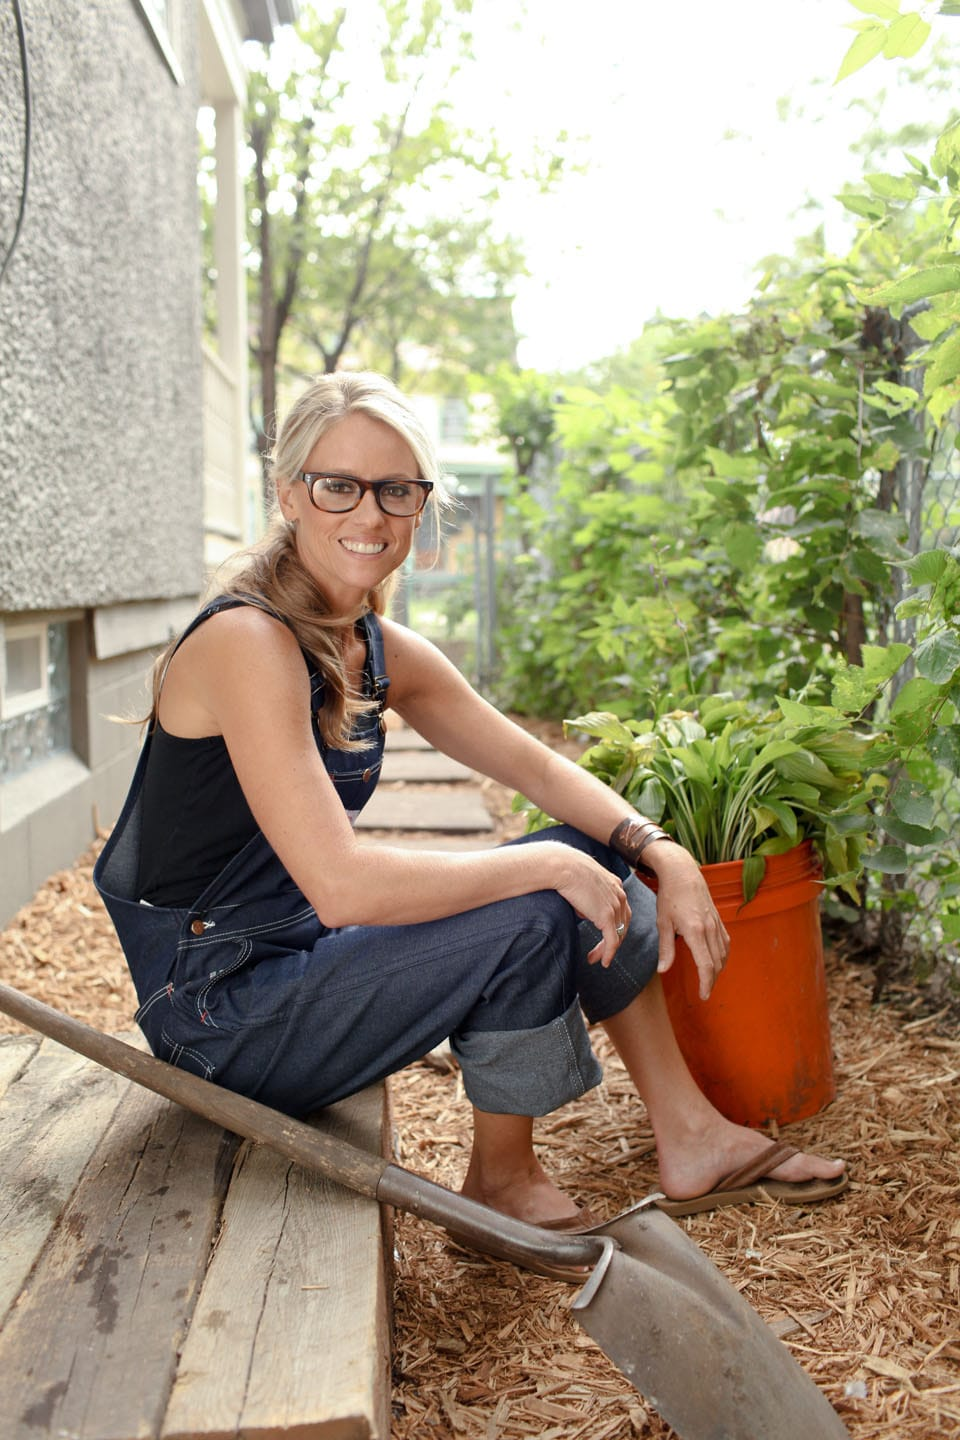 Nicole curtis bio stunning nicole curtis discusses for Rehab addict net worth